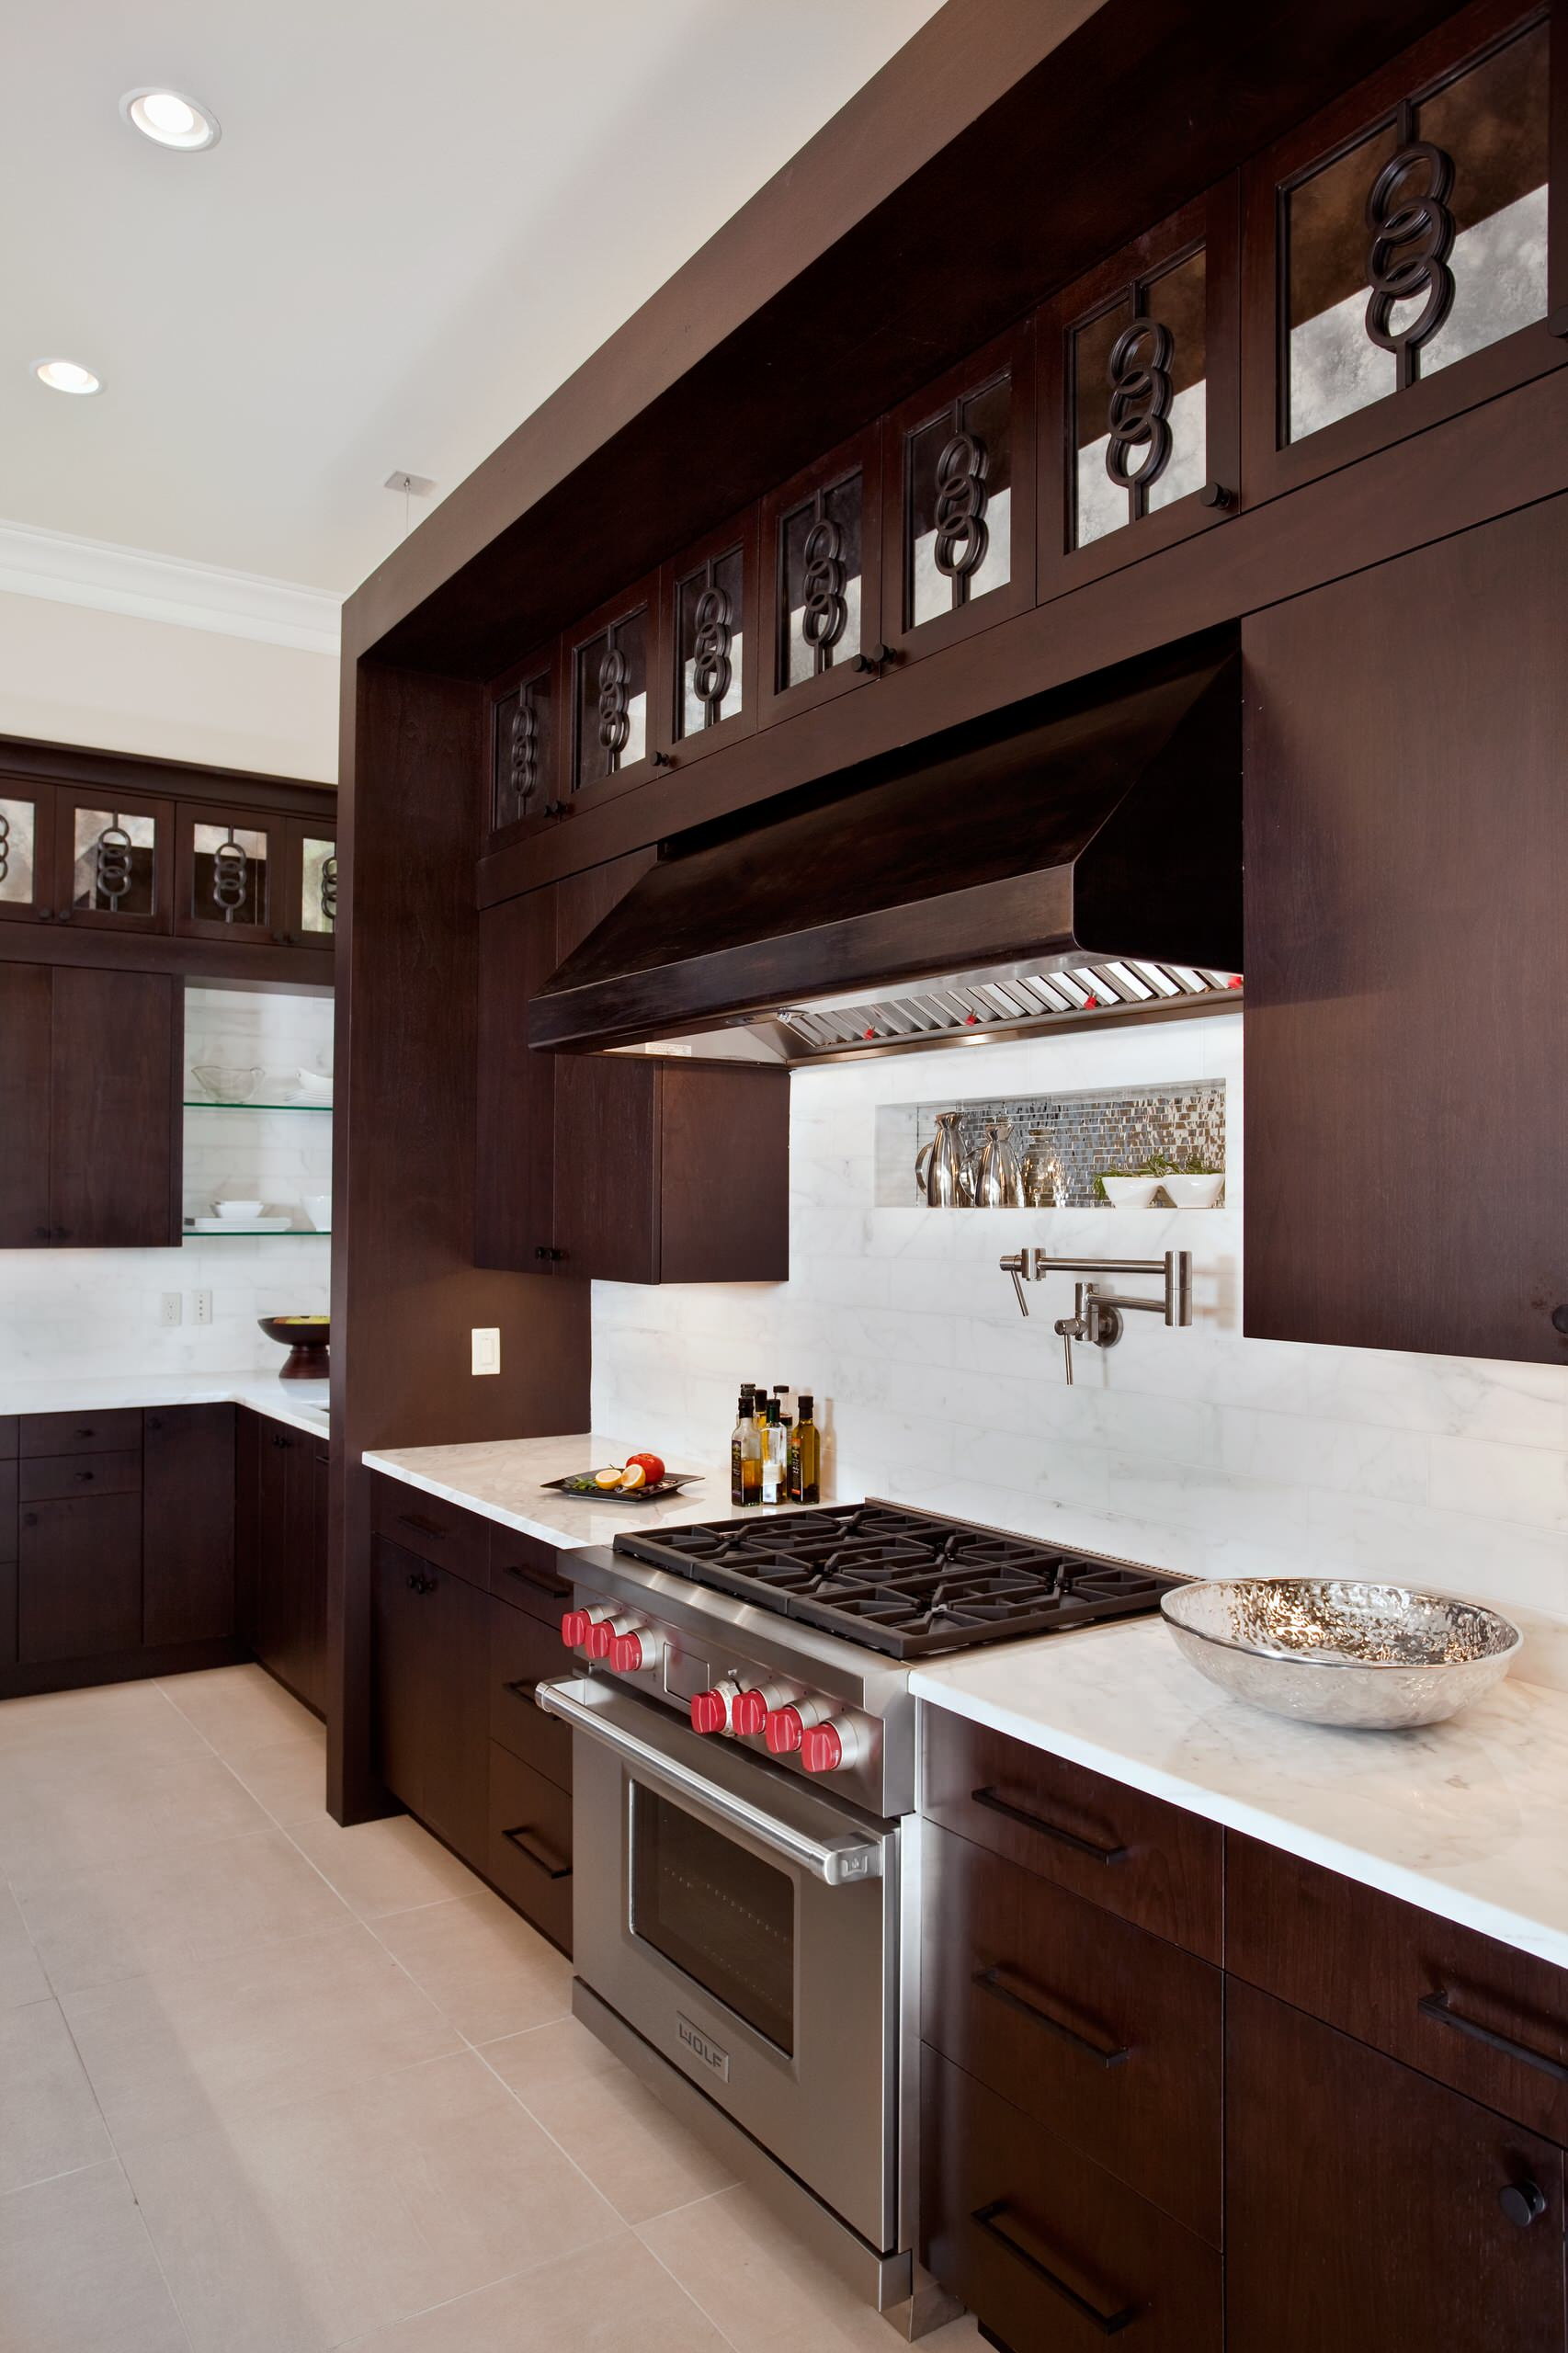 Pot Filler for Inspiring Water Instalation Ideas: Dark Kitchen Cabinets With Copper Range Hoods And Pot Filler For Contemporary Kitchen Design With Tile Backsplash And Gas Stove Plus Tile Flooring Also Ceiling Lights